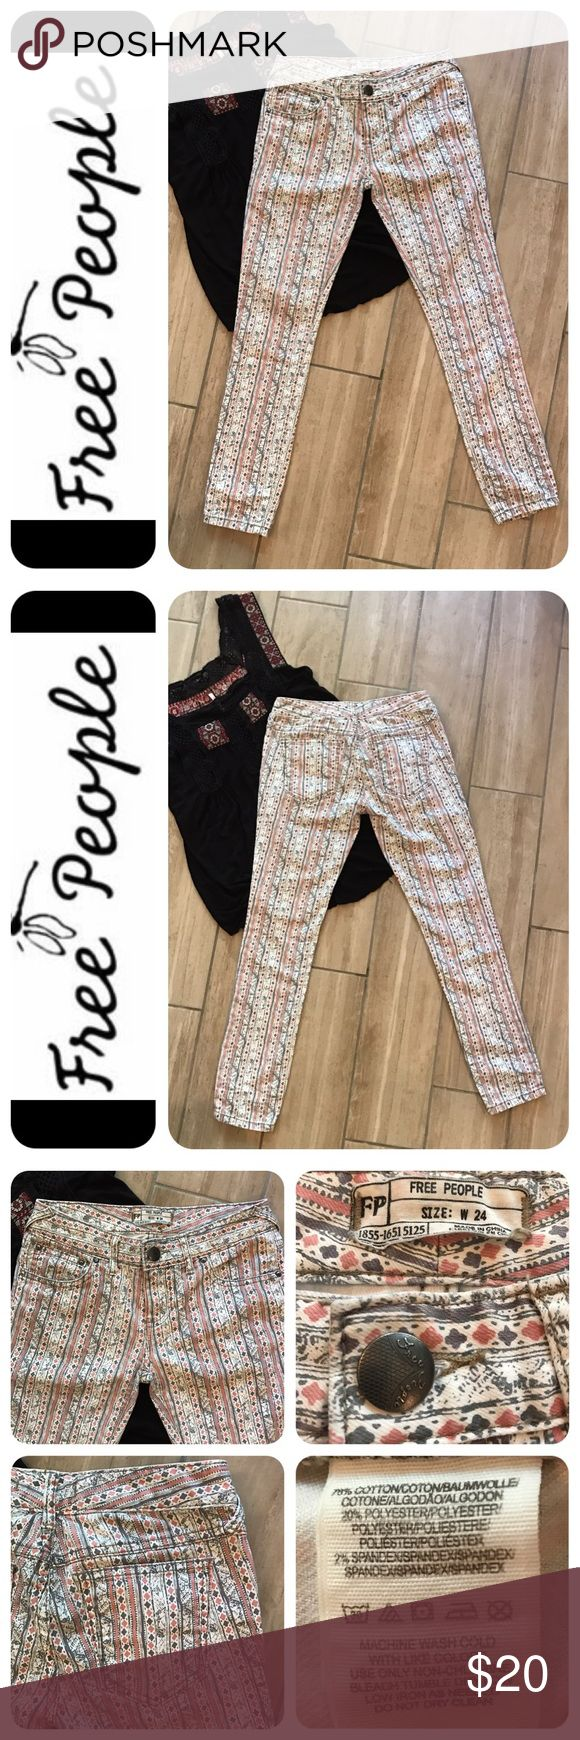 """🦋Free People Tribal Printed Skinny Jeans 🦋 Fun, flirty & boho describe these fab jeans. The delicate tribal print in creamy white, dusty pink and gray is perfect against a tan with a crop top. Approx measurements: Front rise 7"""", waist 24"""" & inseam 26"""". Condition is gently pre-loved- like new. 🦋No trades or lowball offers, please. Free People Jeans Skinny"""